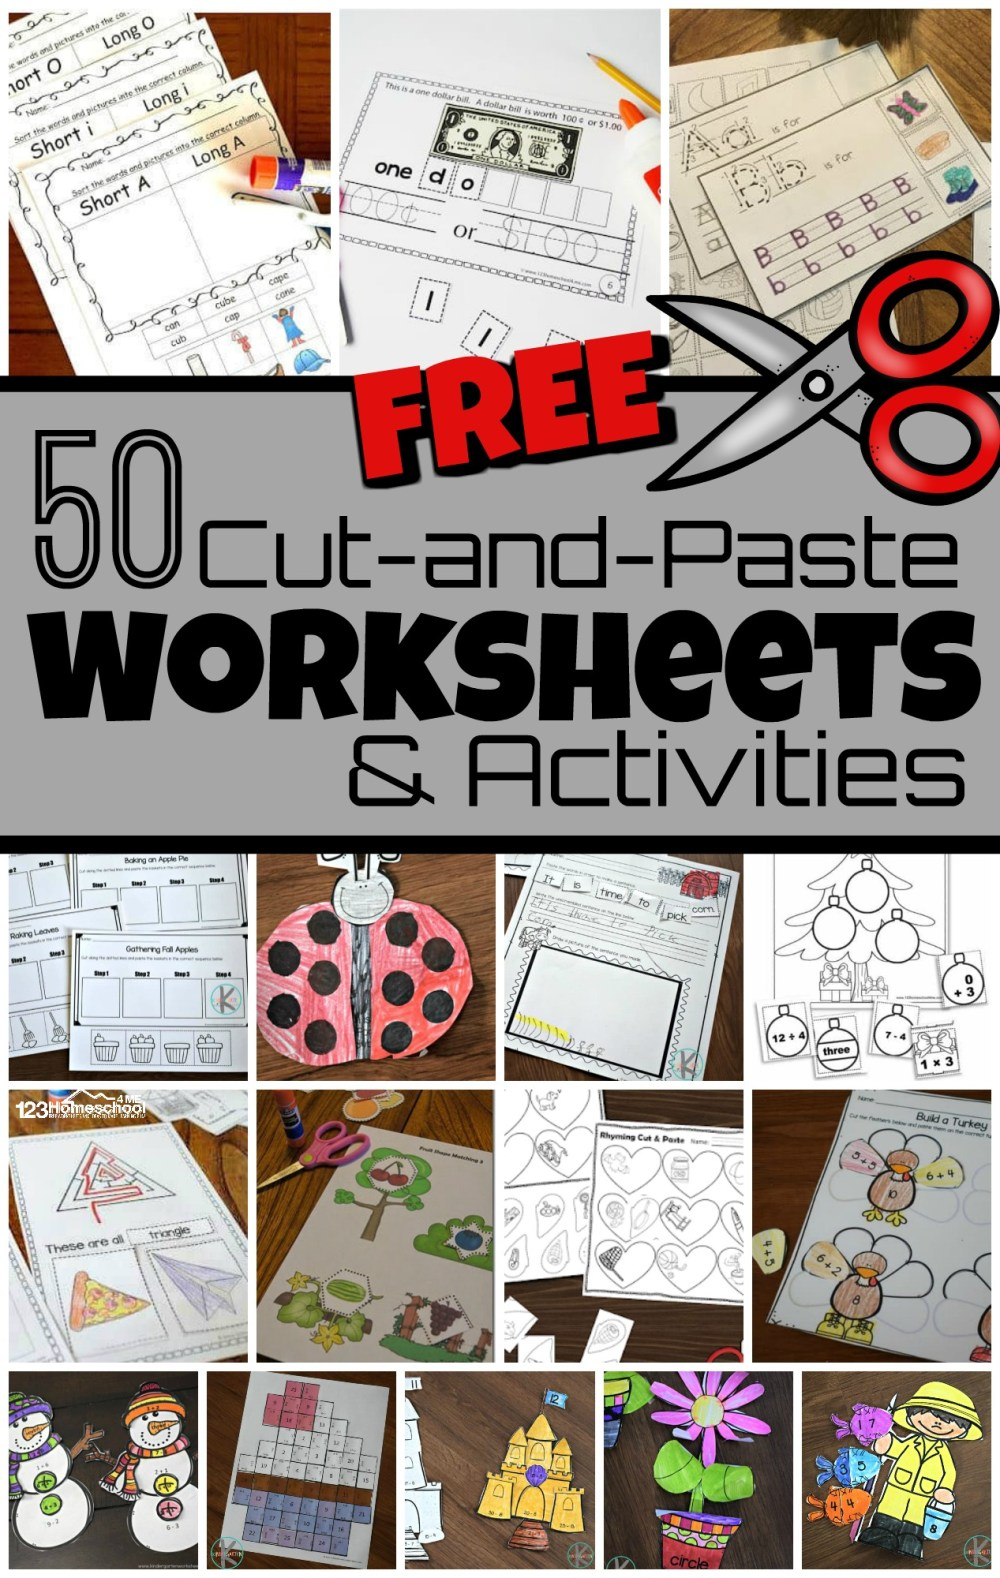 medium resolution of 50 FREE Cut and Paste Worksheets